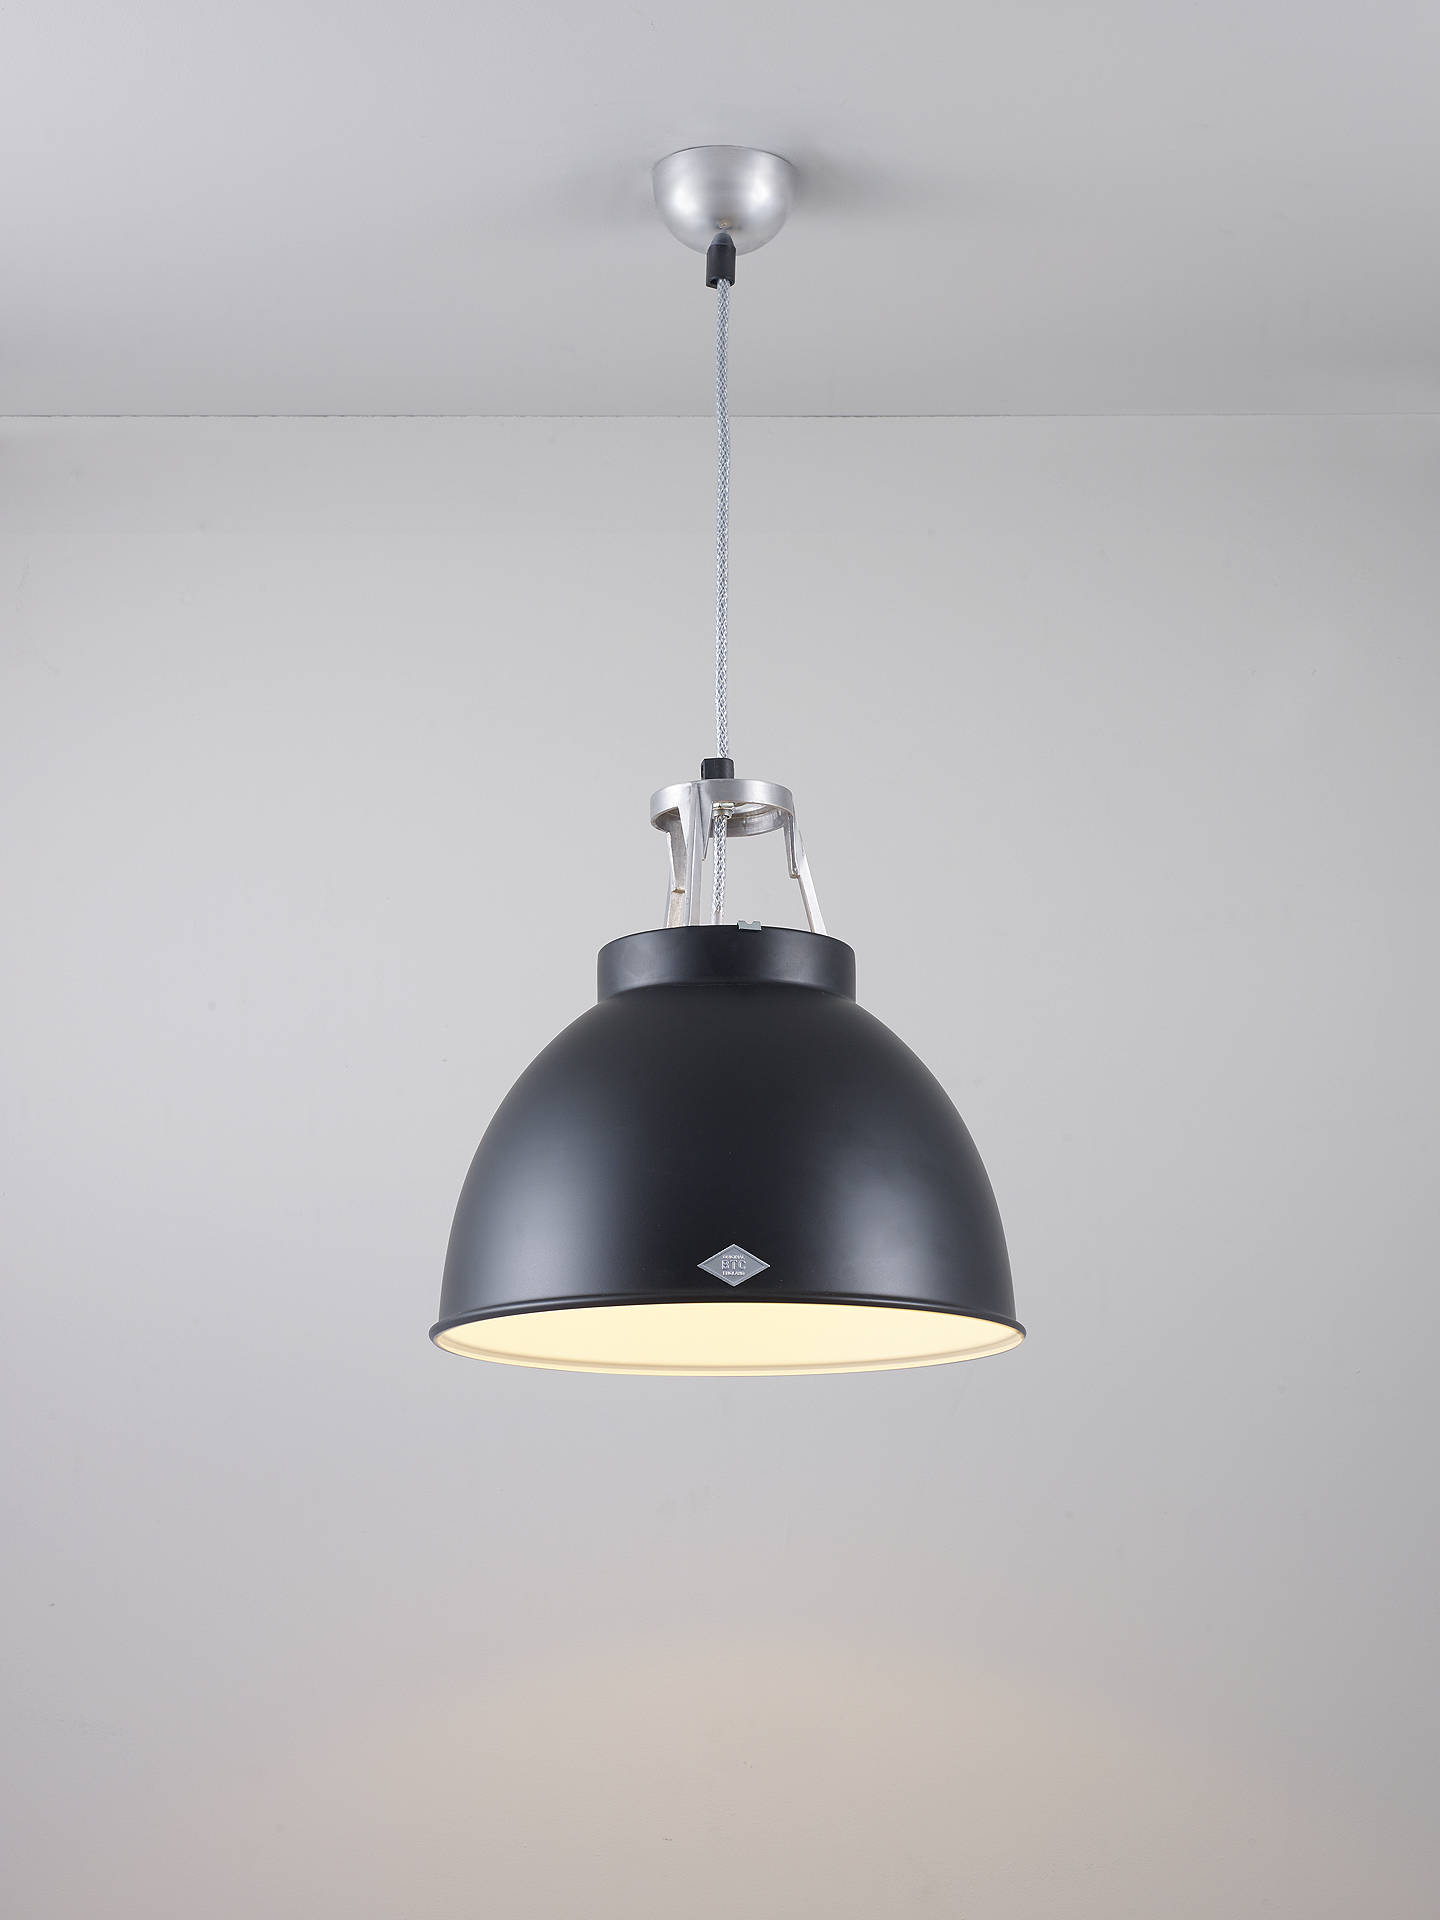 BuyOriginal BTC Titan Size 1 Pendant Ceiling Light, Black Online at johnlewis.com